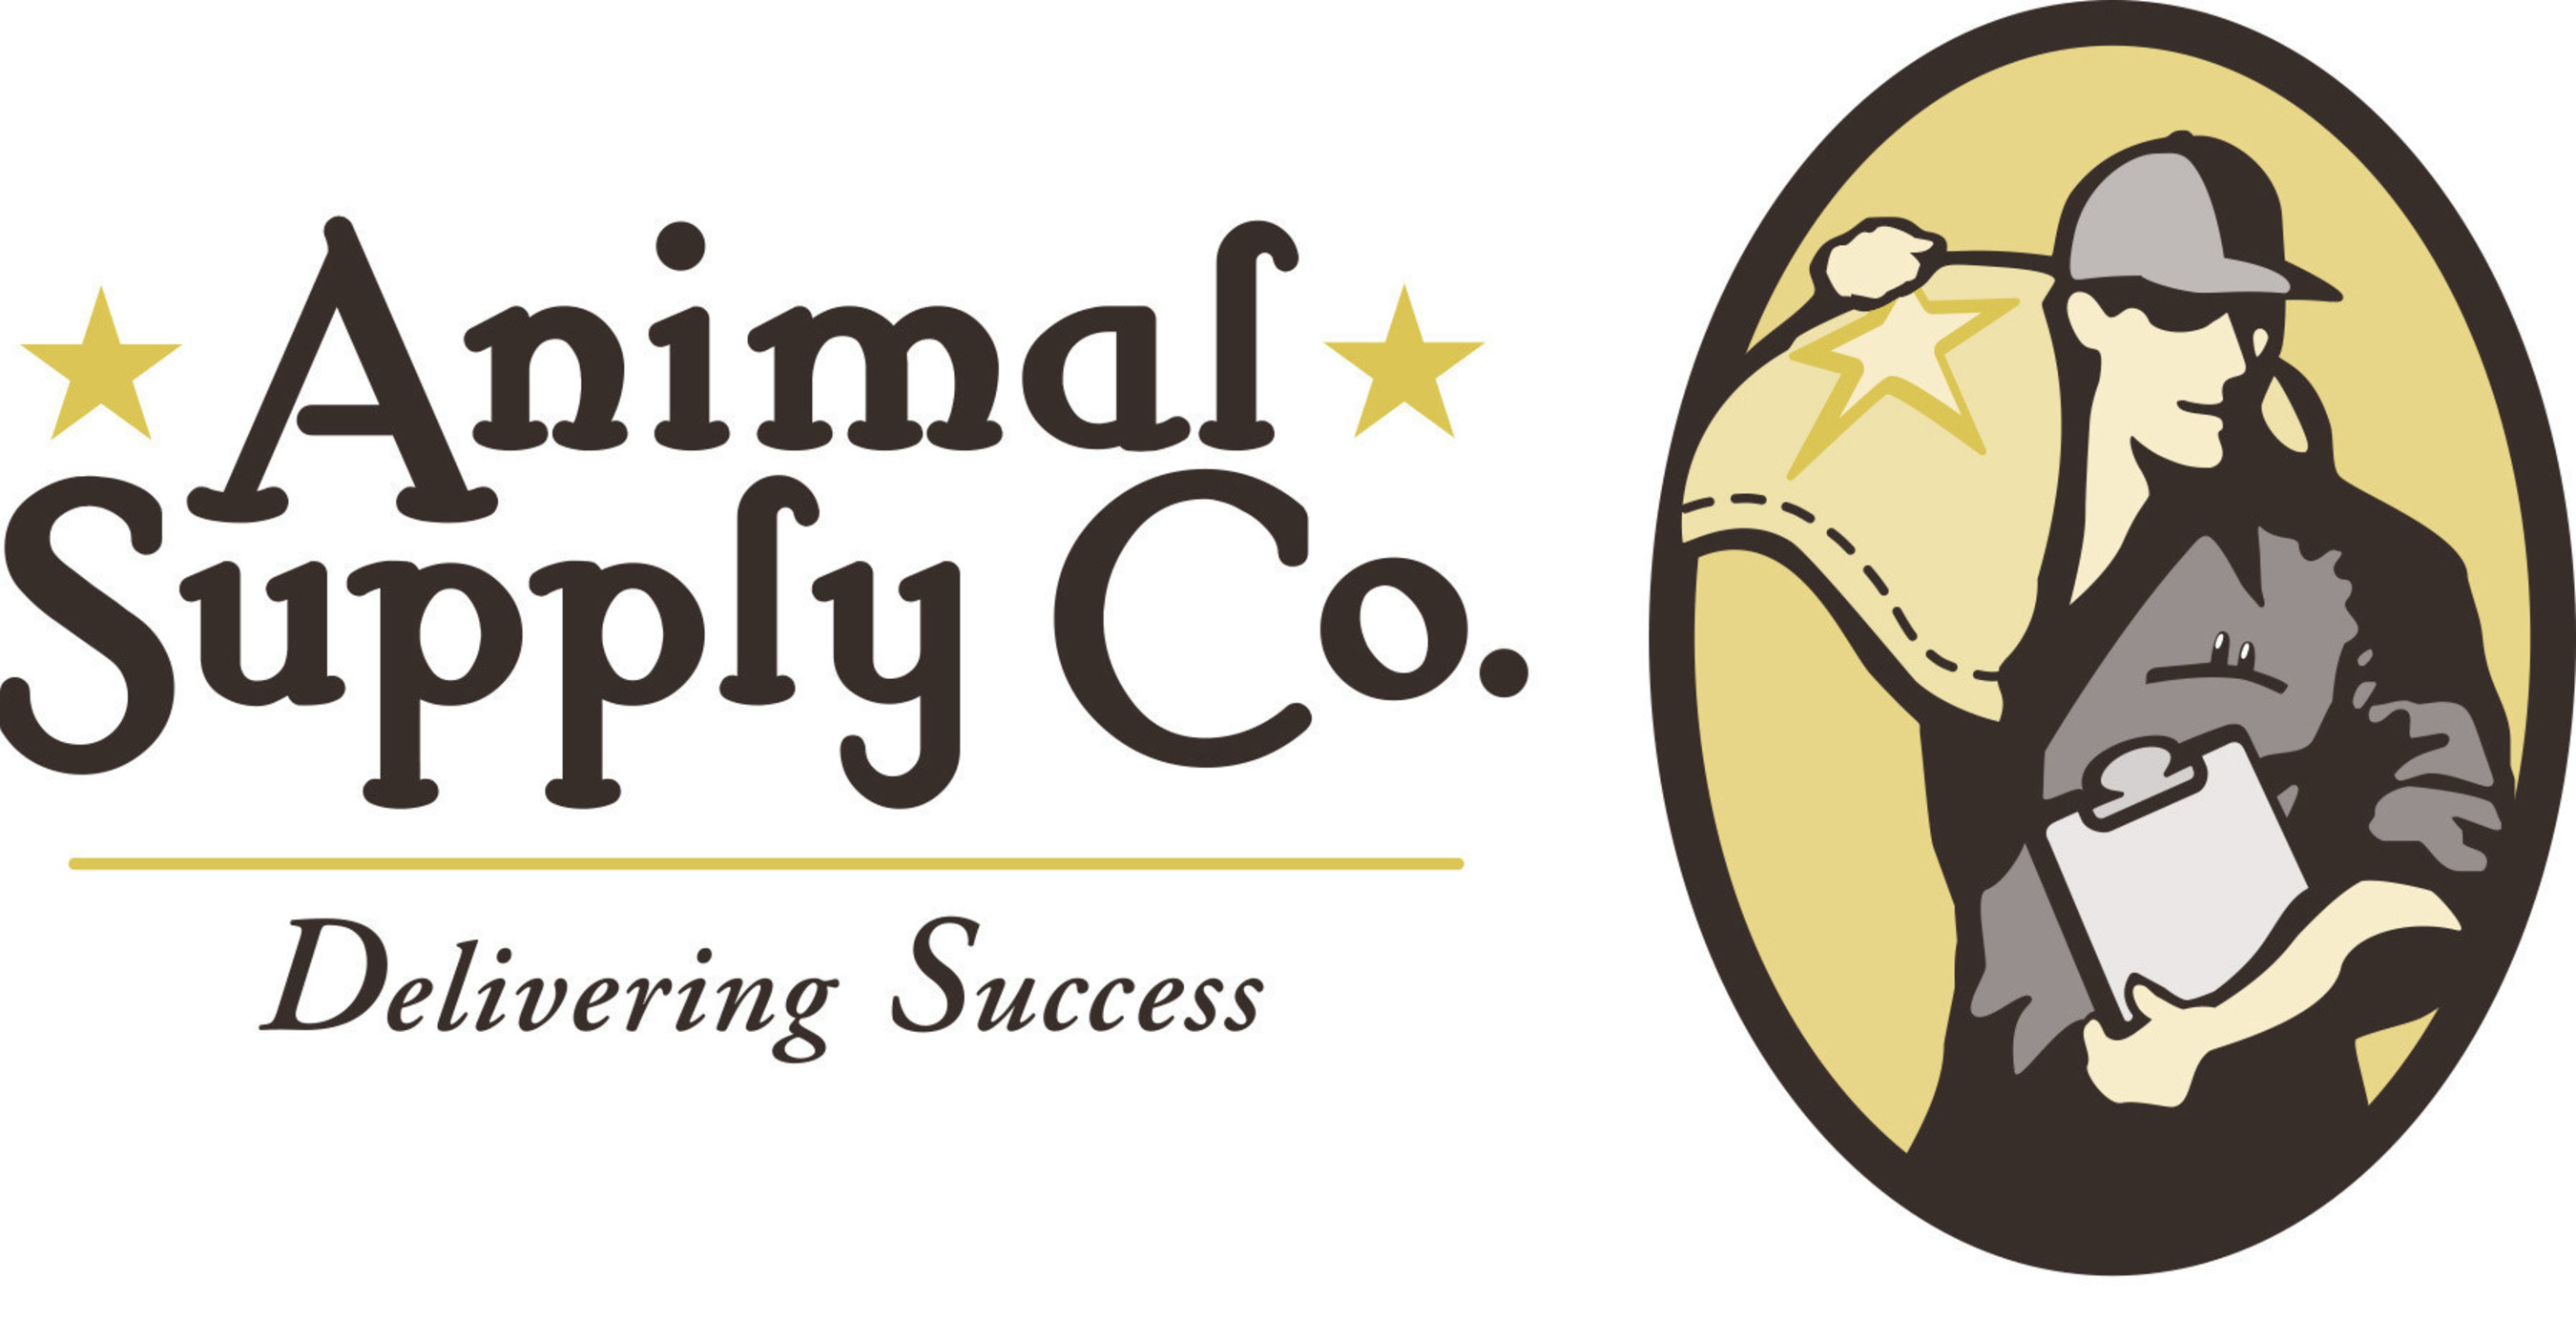 animal supply company acquires wilson pet supply, incanimal supply company logo